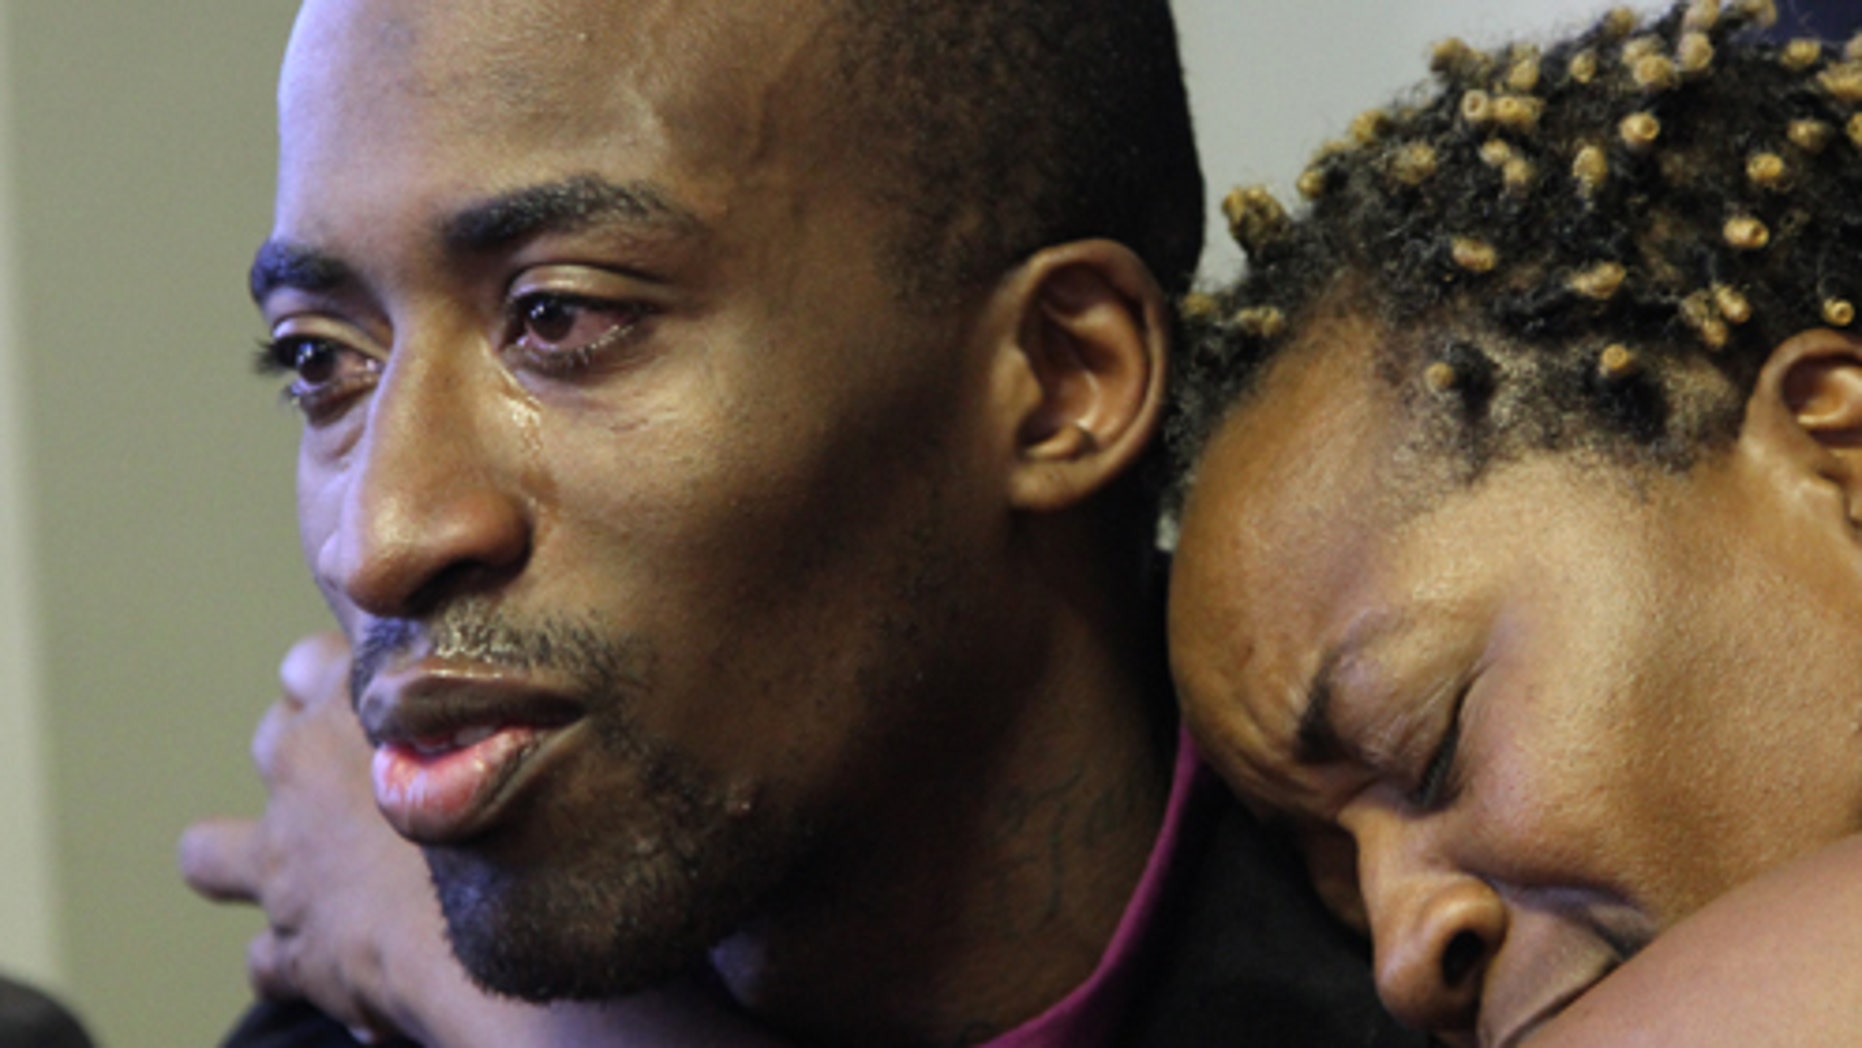 Jabin Bogan is hugged by his mother Aletha Smith as they participate in a news conference on Friday, Nov. 23, 2012 in El Paso, Texas. The 27-year-old Dallas truck driver was released after seven months in a prison in Mexico accused of ammunition smuggling. He was arrested in April after crossing the border by mistake with 268,000 rounds of ammunition. (AP Photo/Juan Carlos Llorca)